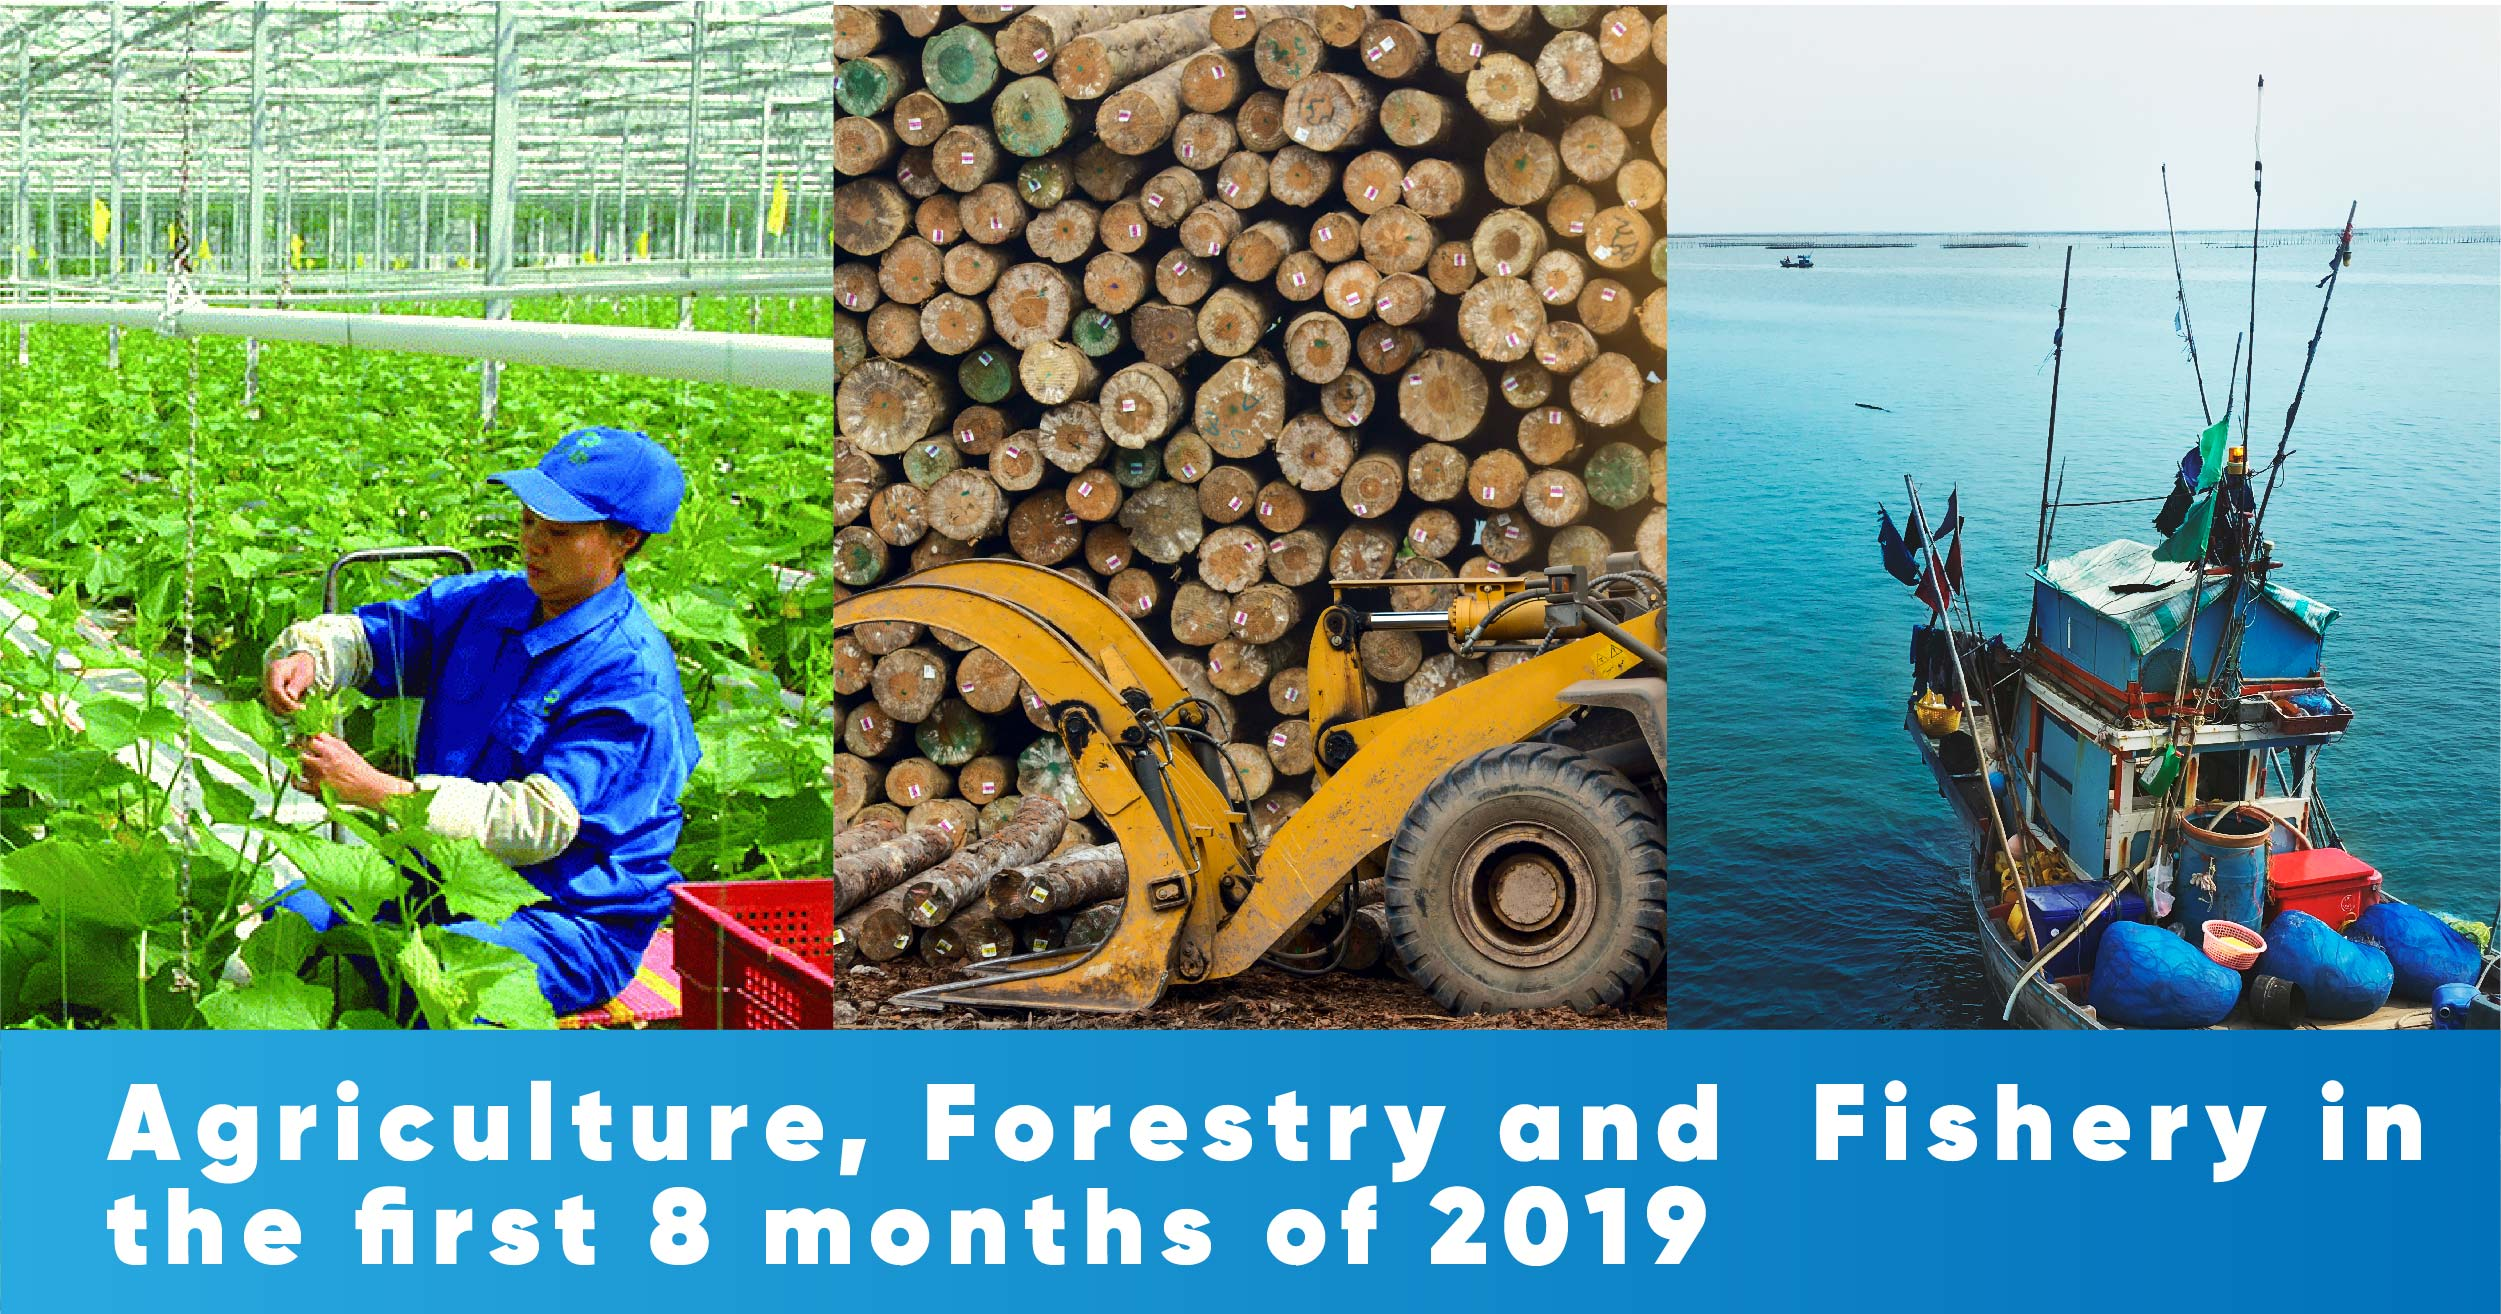 Agriculture, forestry and fishery in the first 8 months of 2019